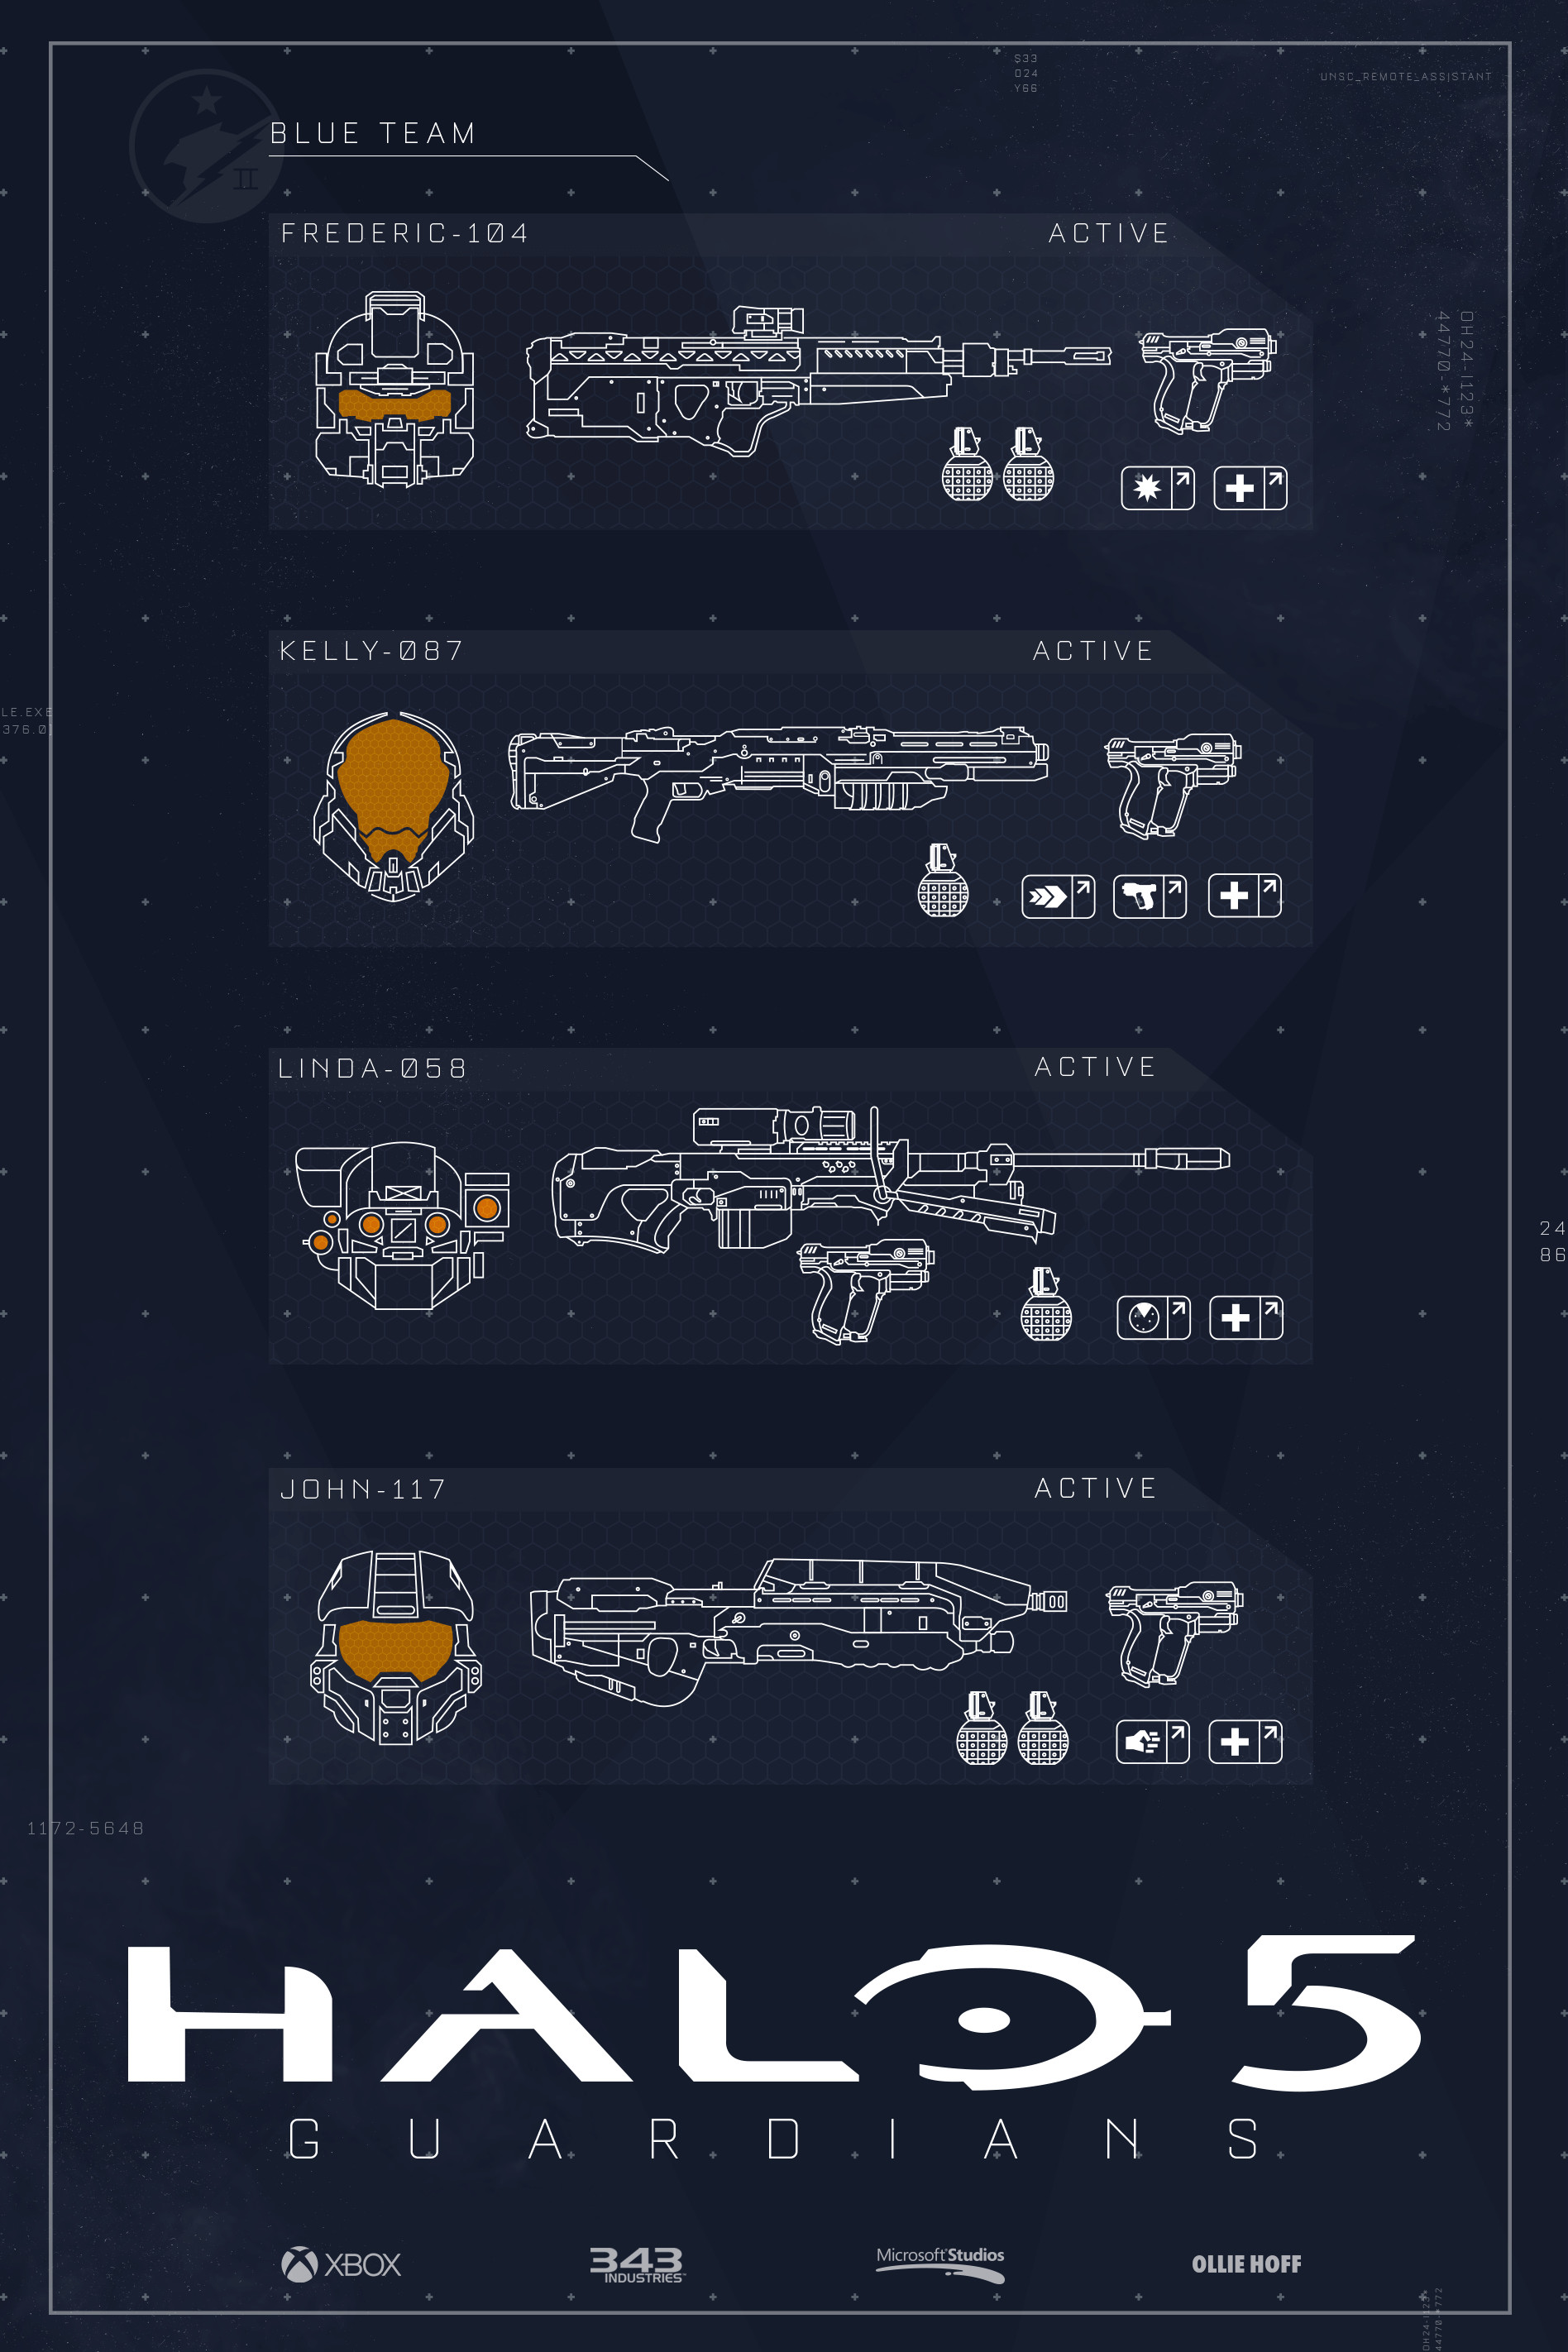 Self-initiated poster set for Halo 5 of both Blue Team and Fireteam Osiris.